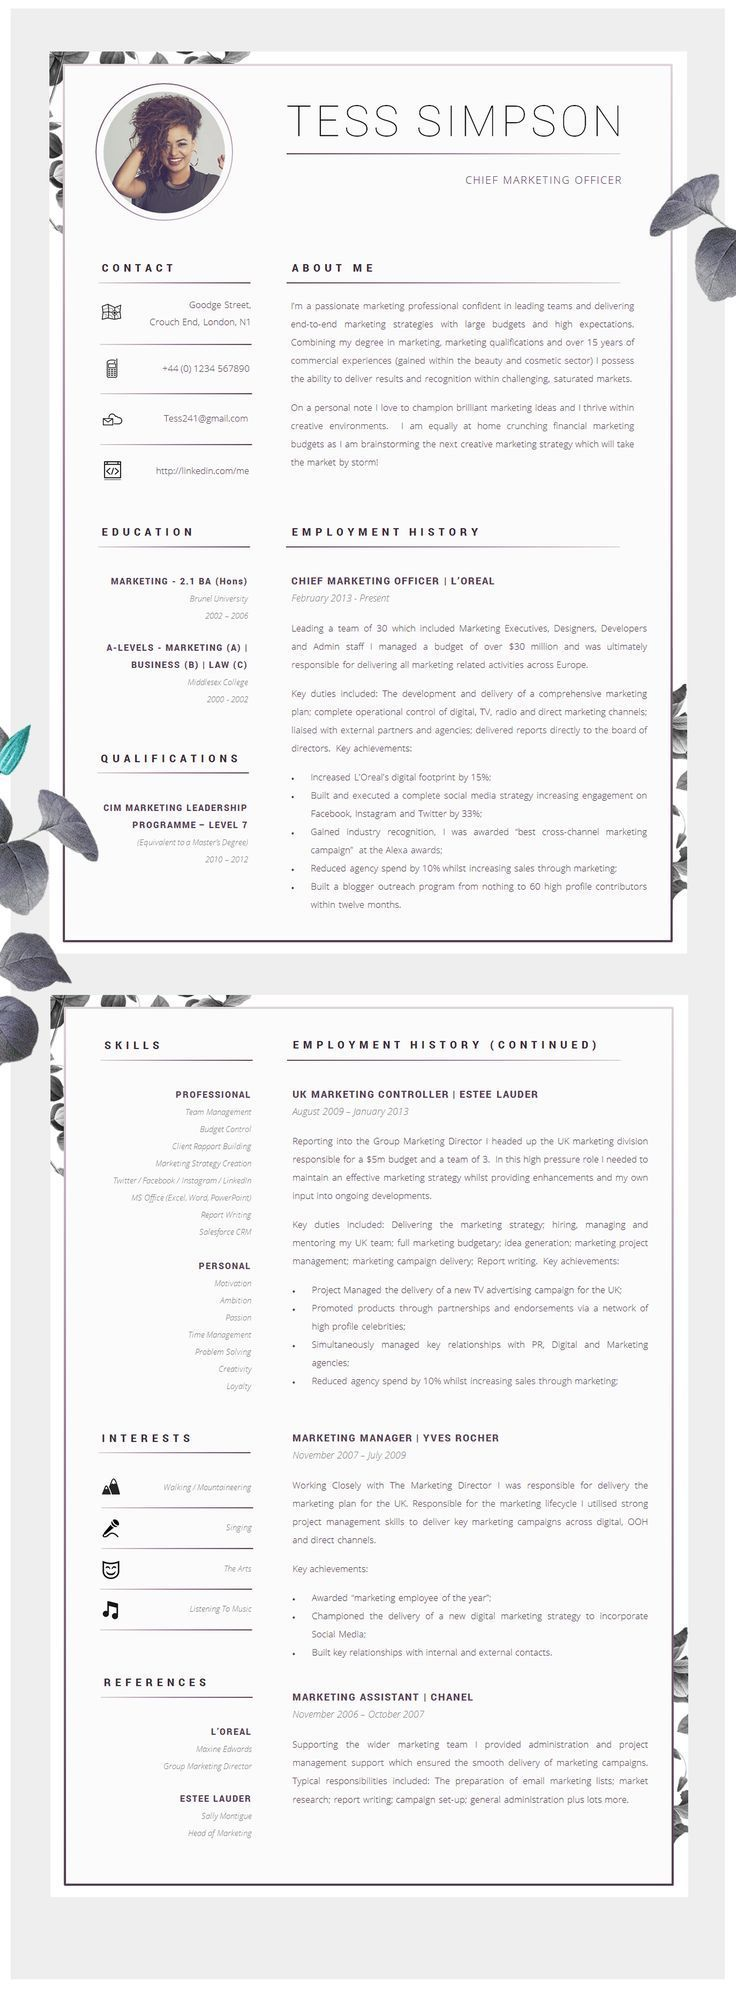 Resume Template Instant Download Creative cv, Creative